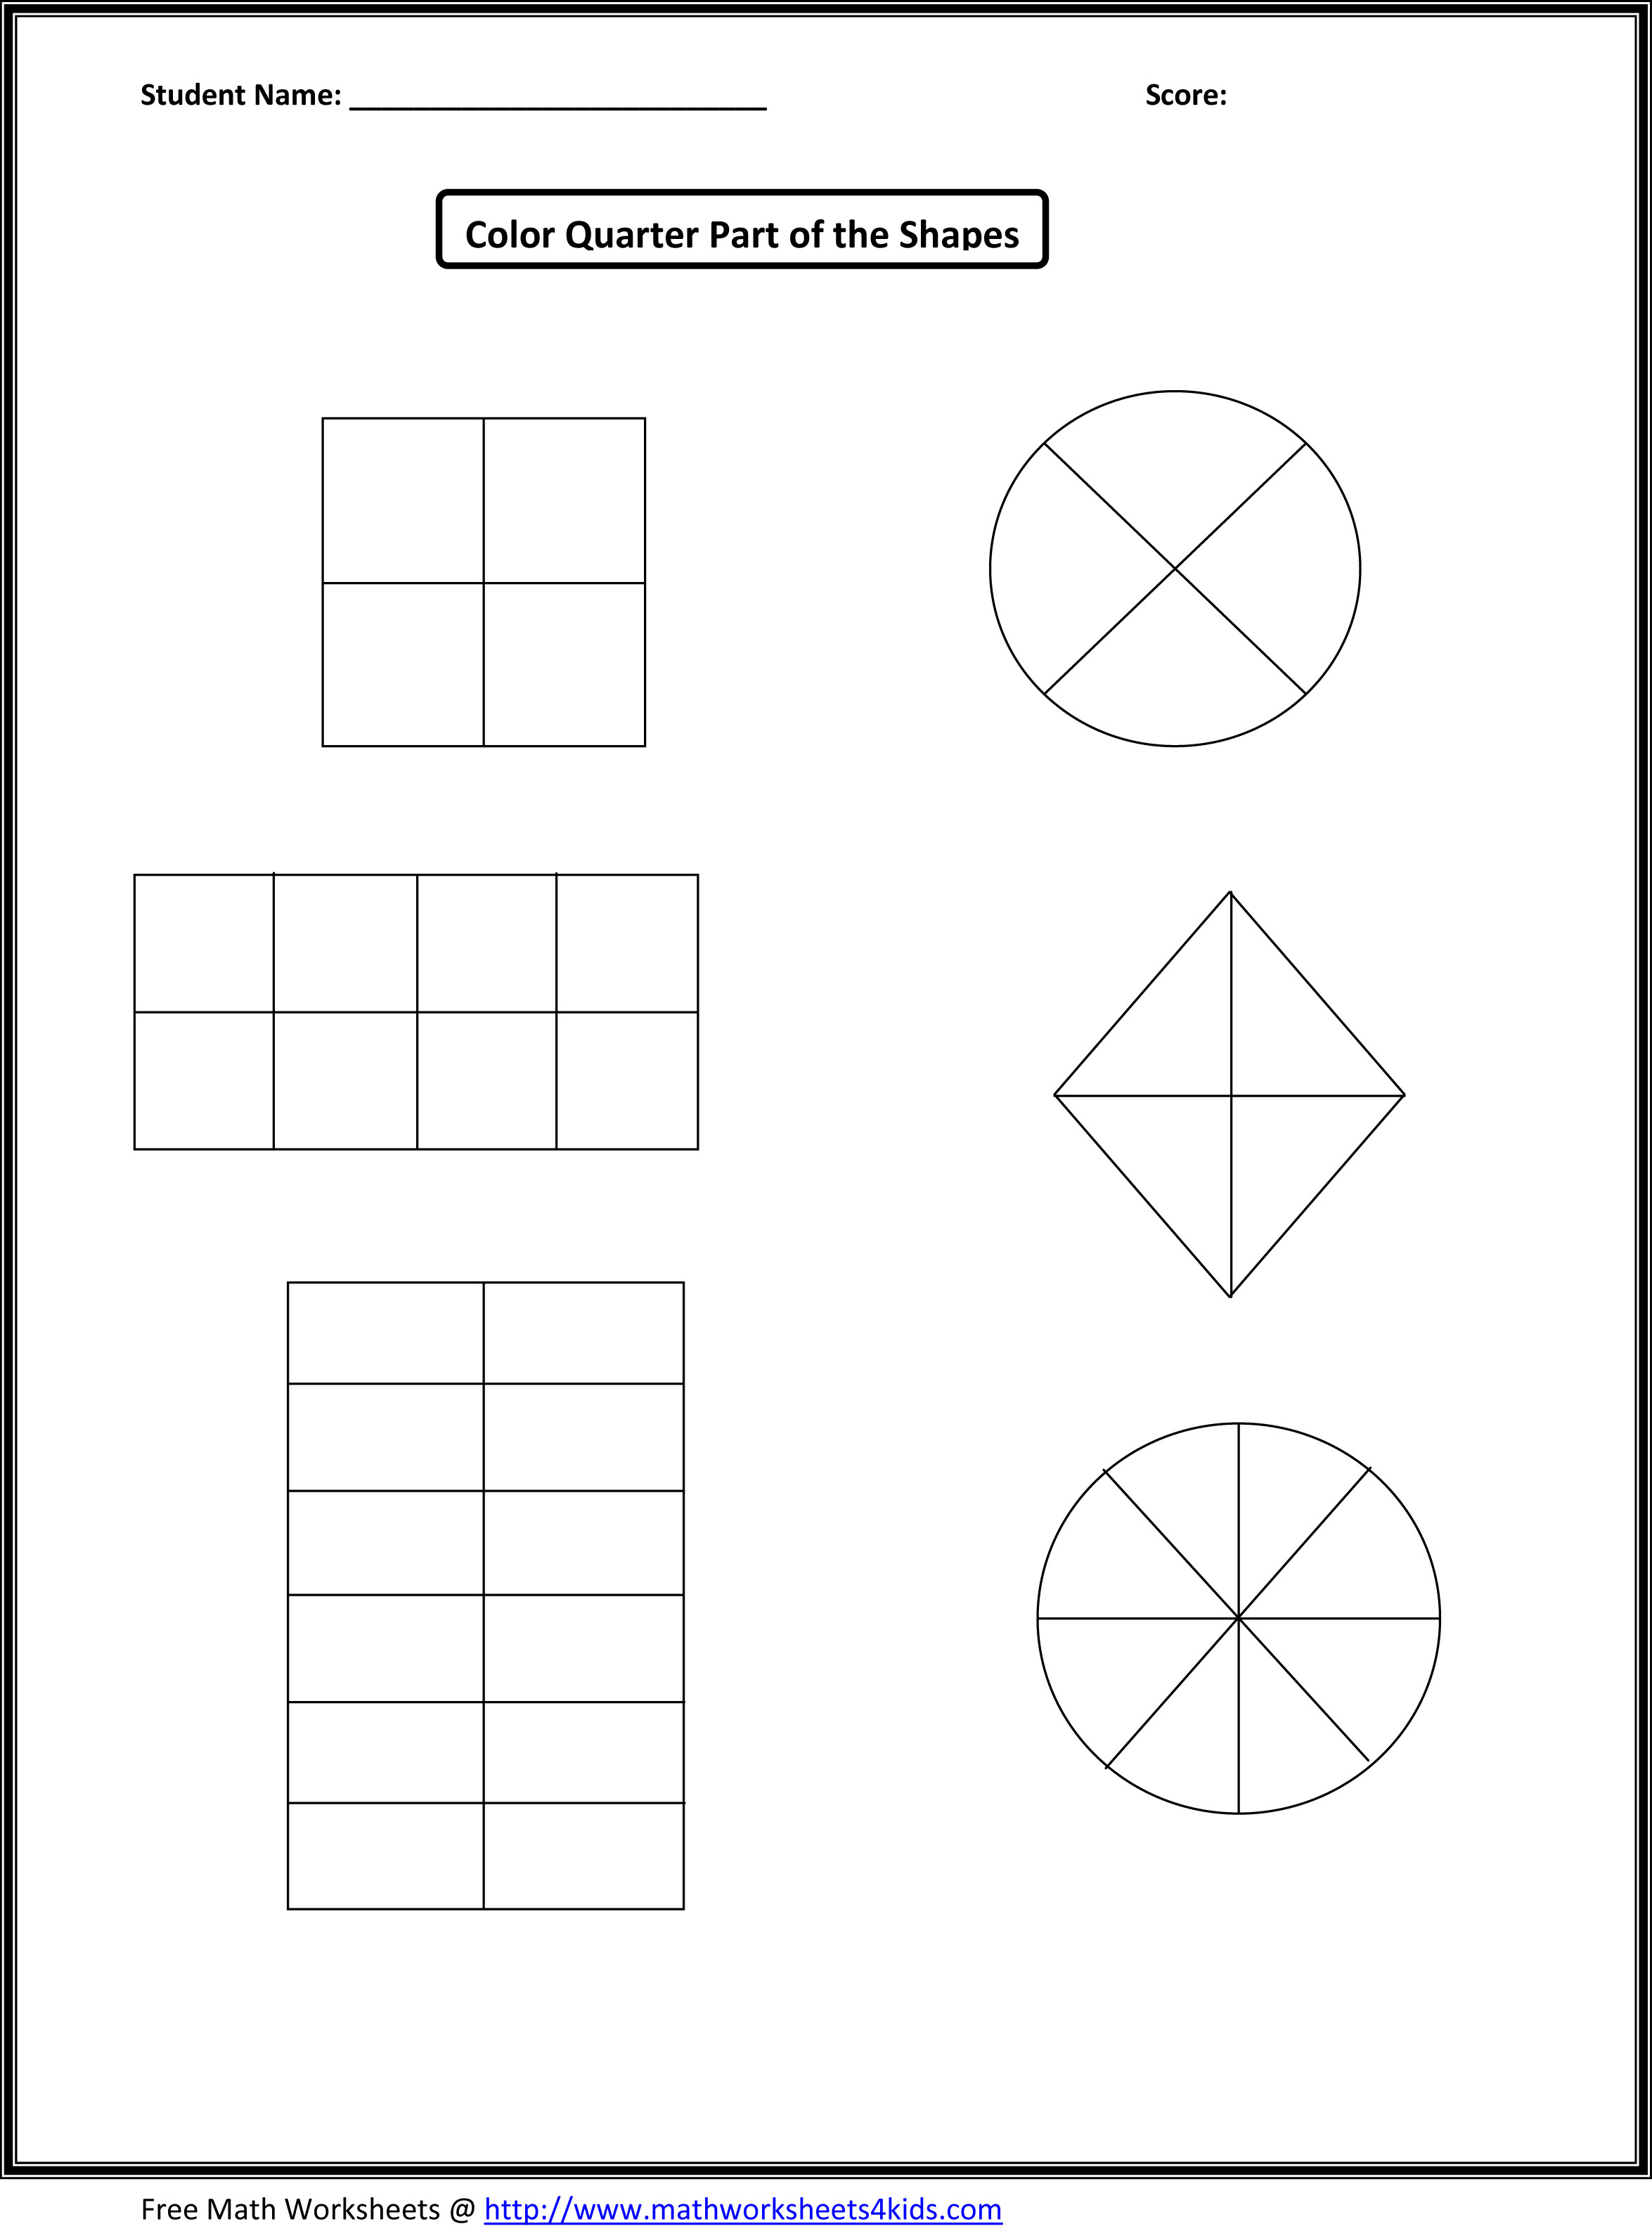 Fractions Worksheets First Grade A1 Wk 7 8 Halves and Quarters Shapes Numbers Lessons Tes